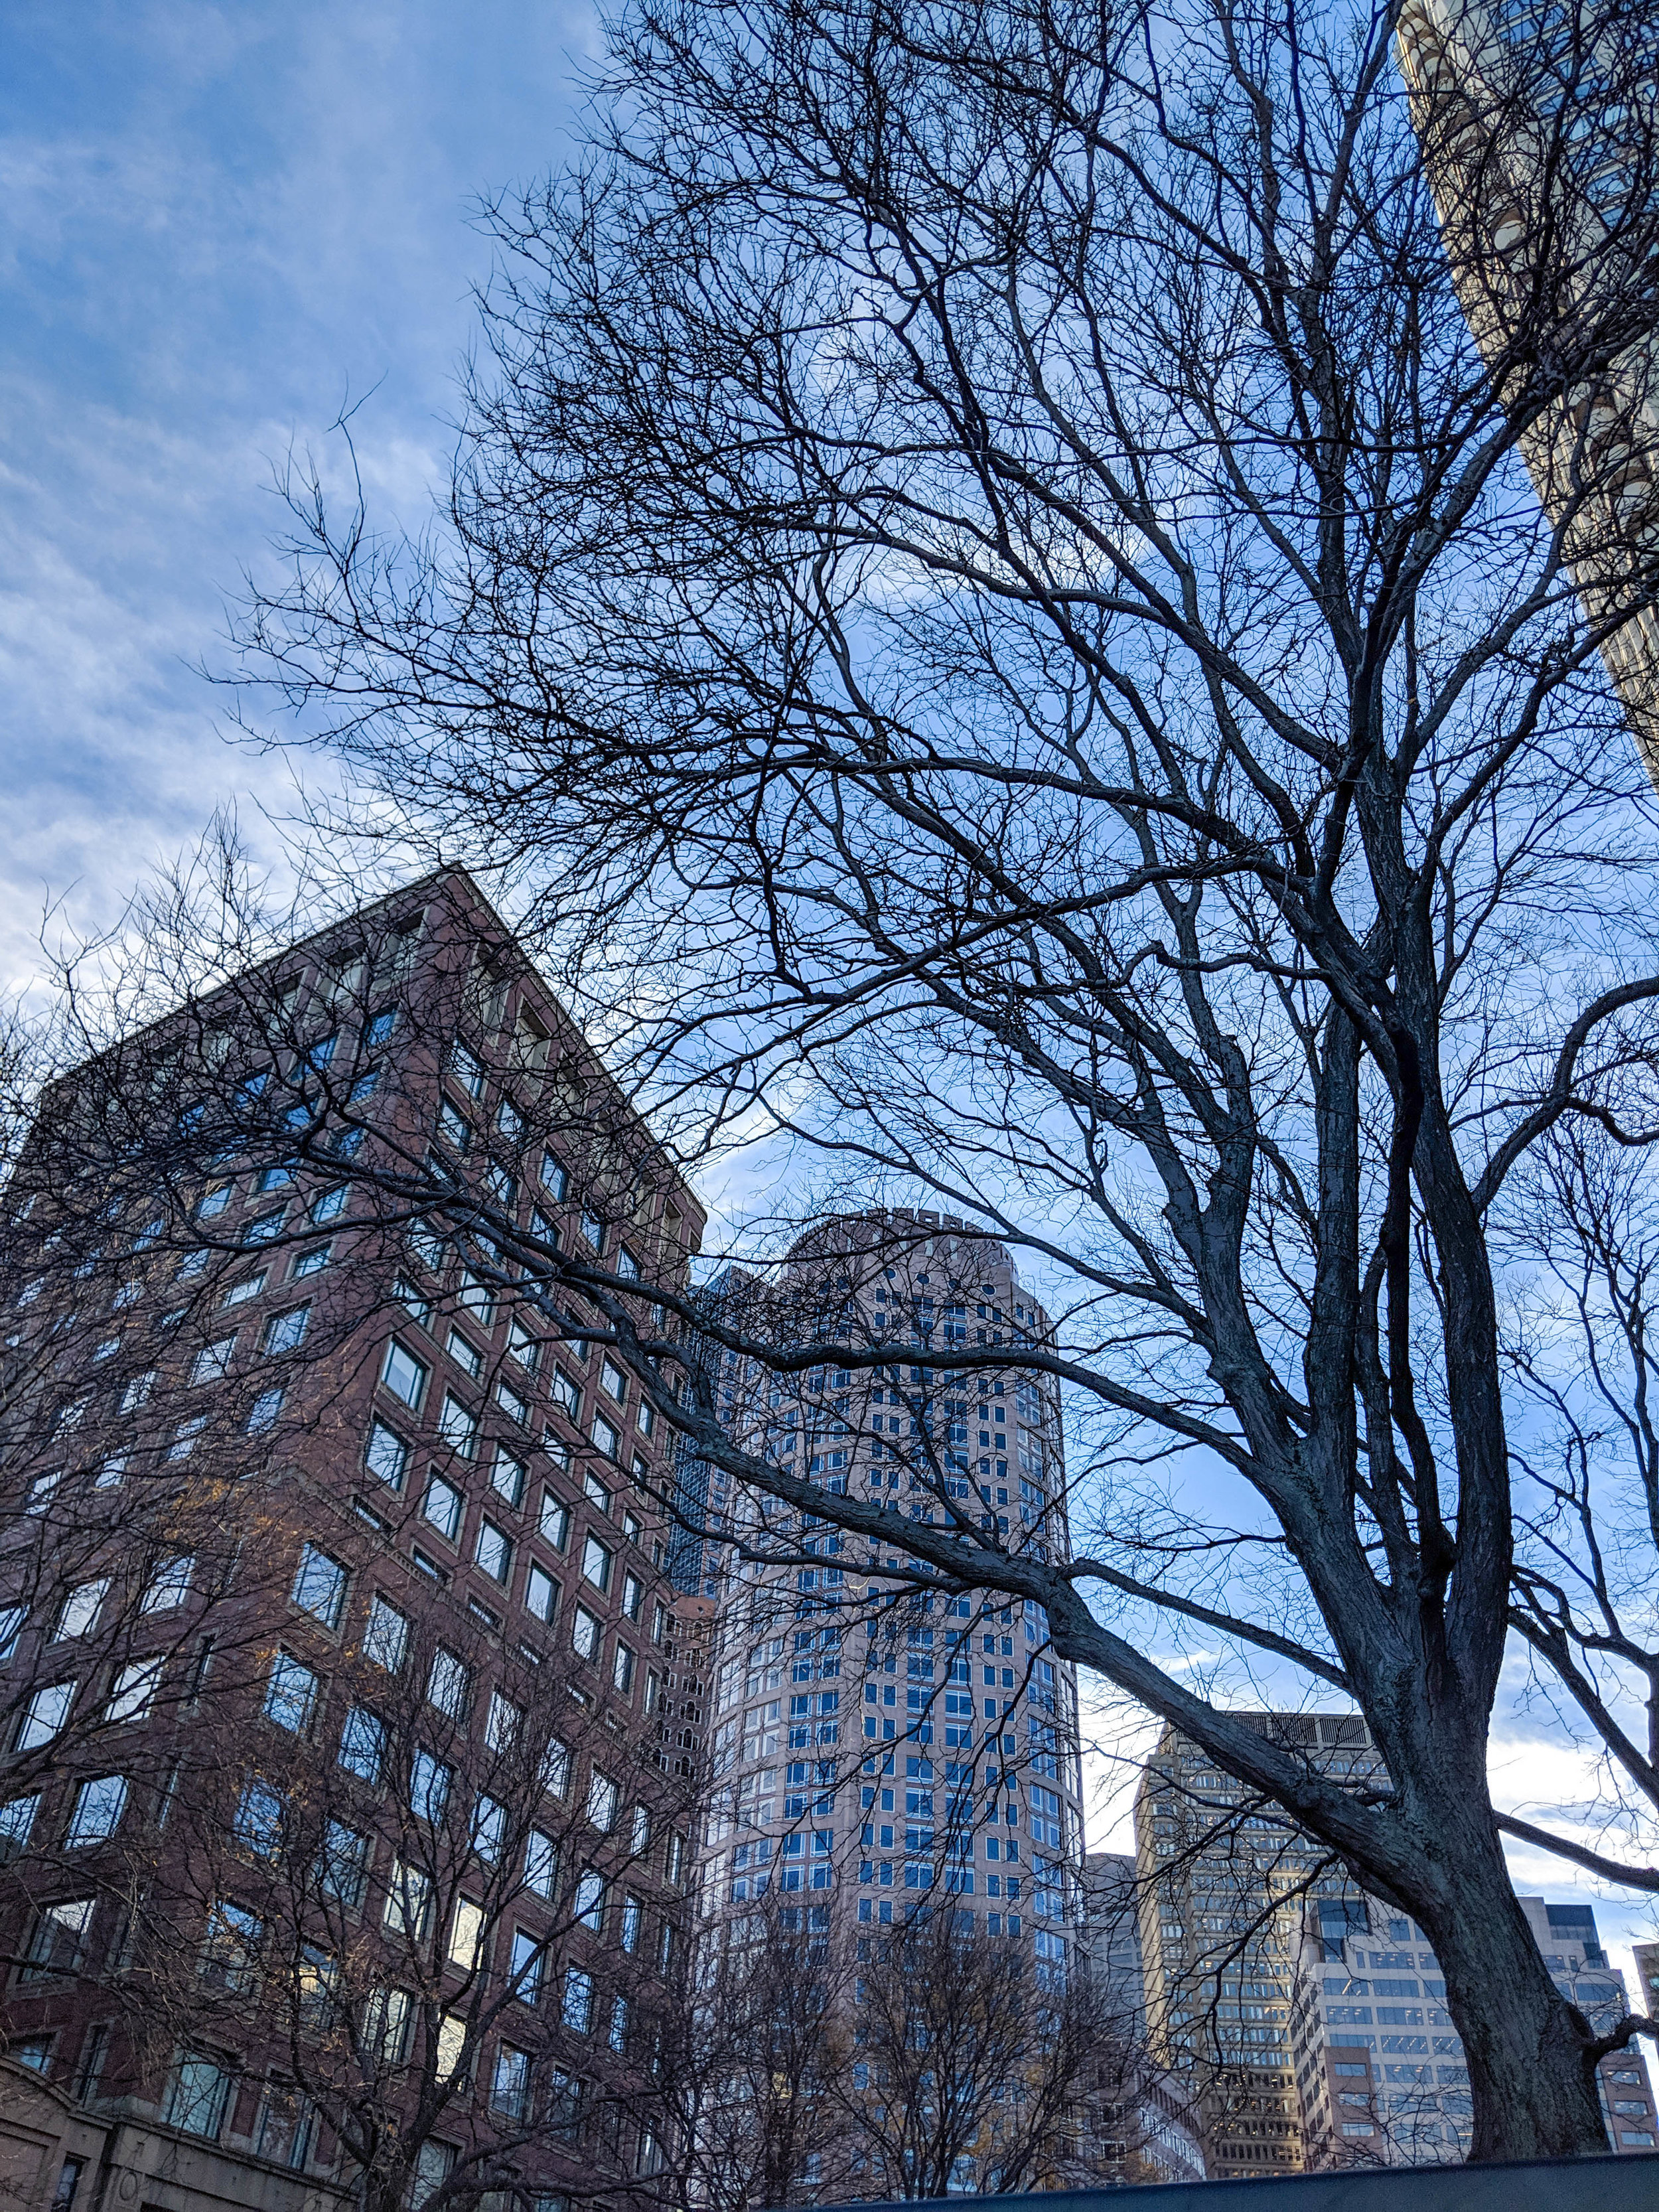 bri rinehart; photography; boston; nature; architecture; buildings